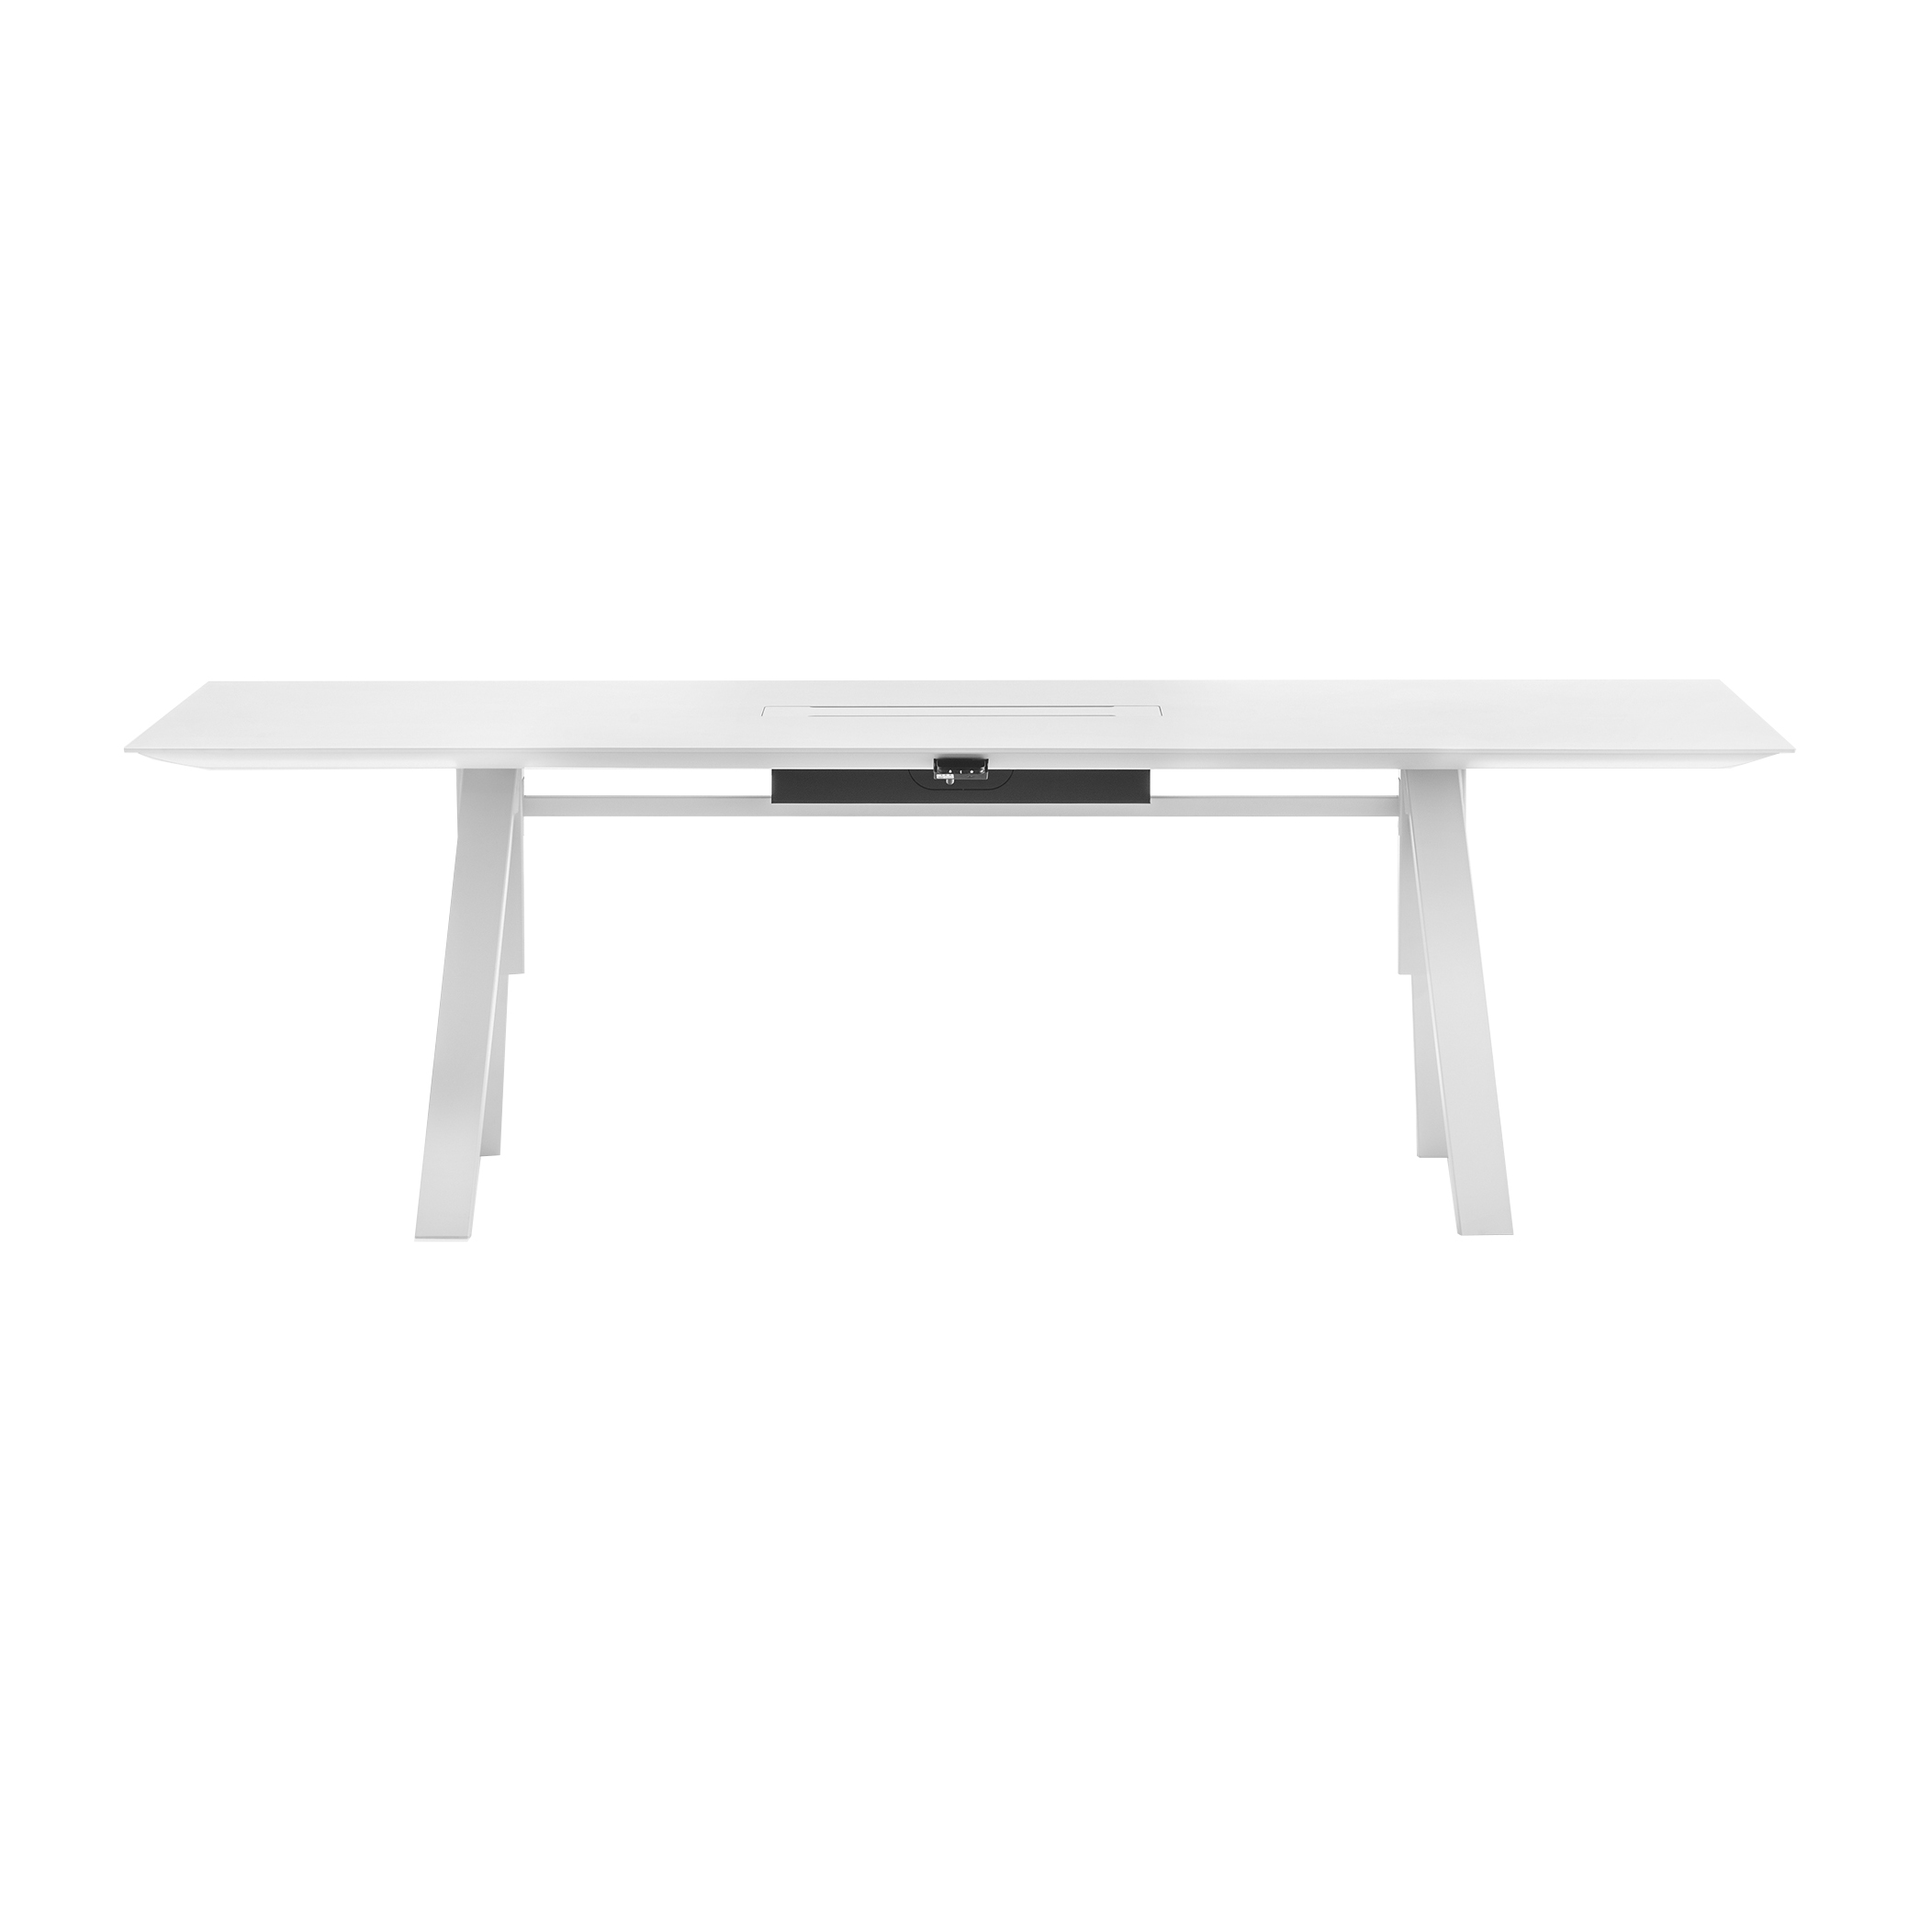 Basic Collection contract furniture